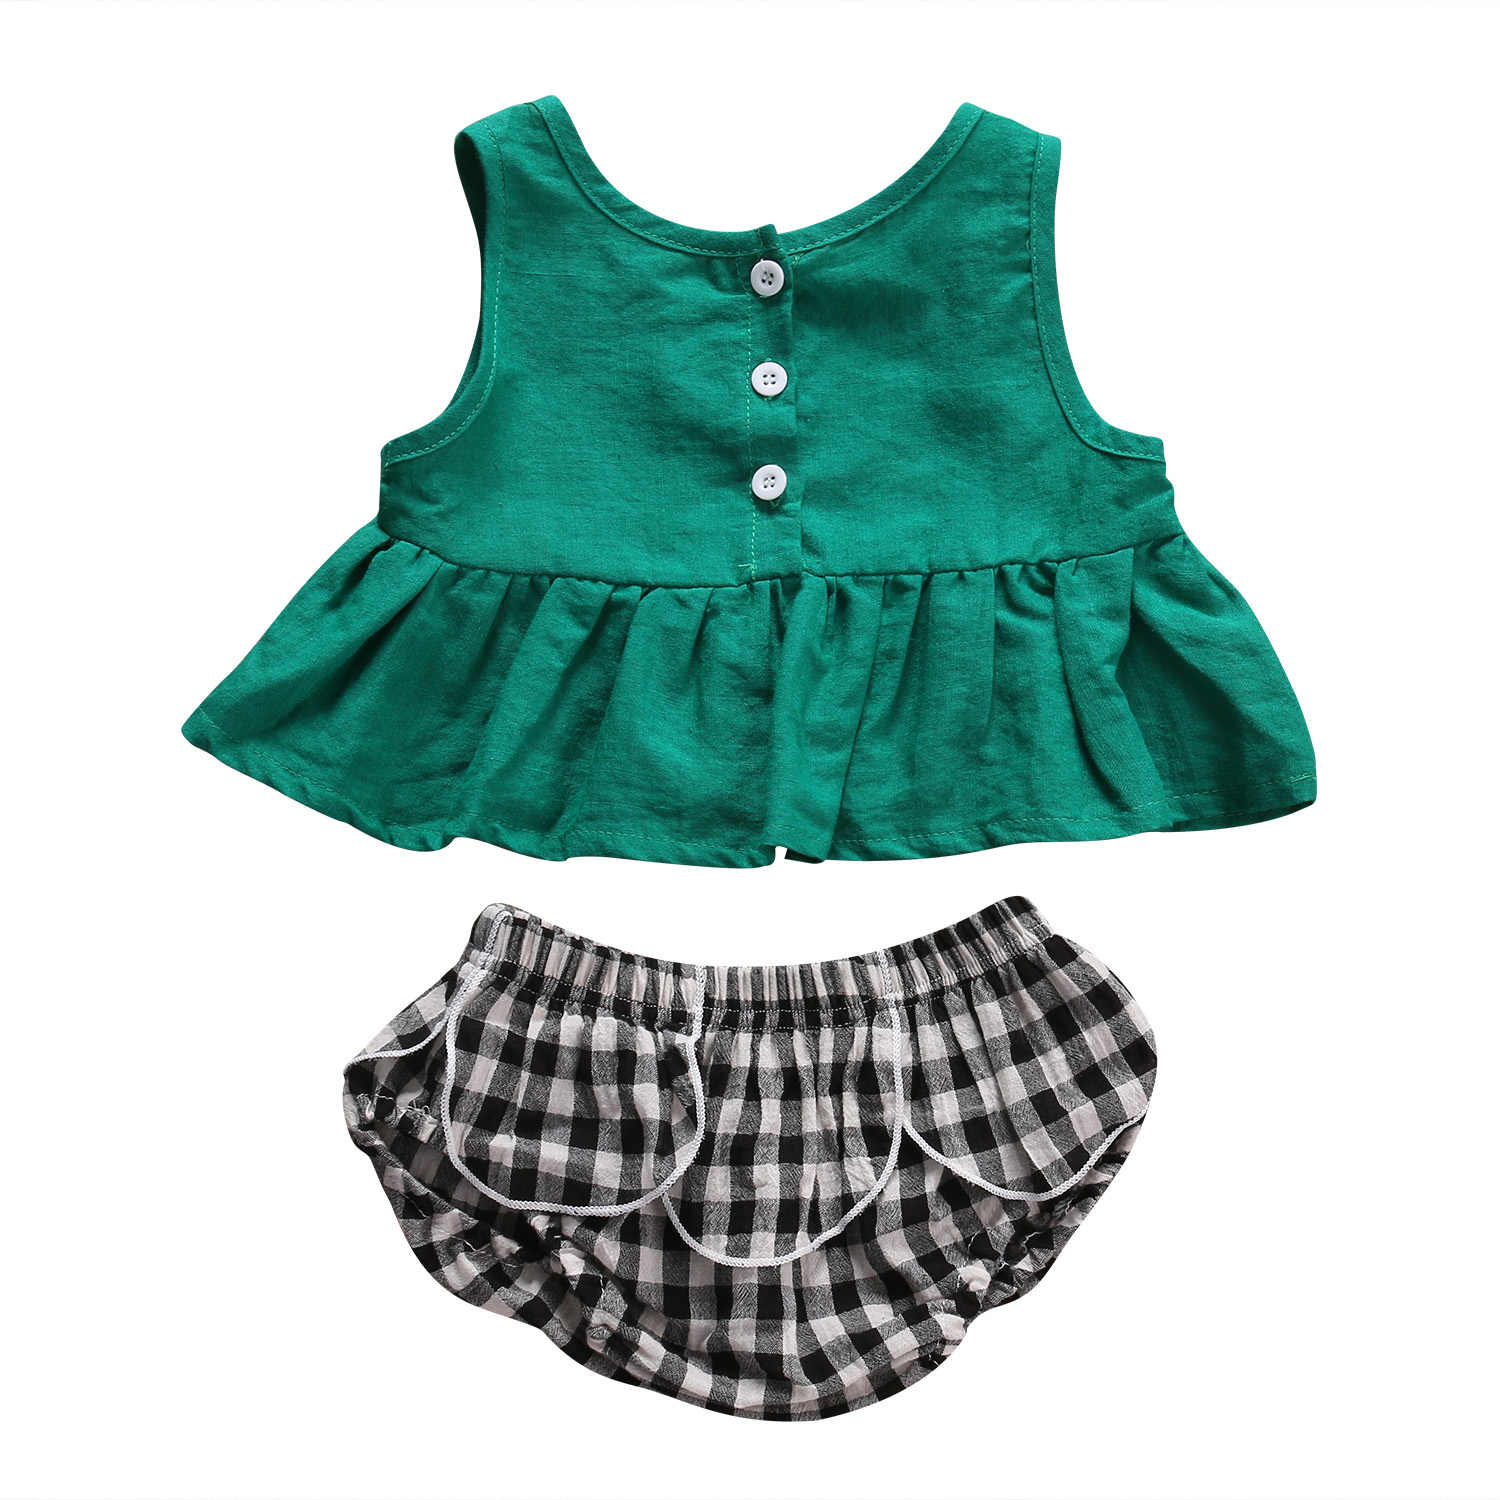 Newborn Baby Girls Clothing Sets Cute Lovely Sleeveless Cotton Baby Top+Plaid Shorts 2pcs Outfits Kids Set Summer Clothes